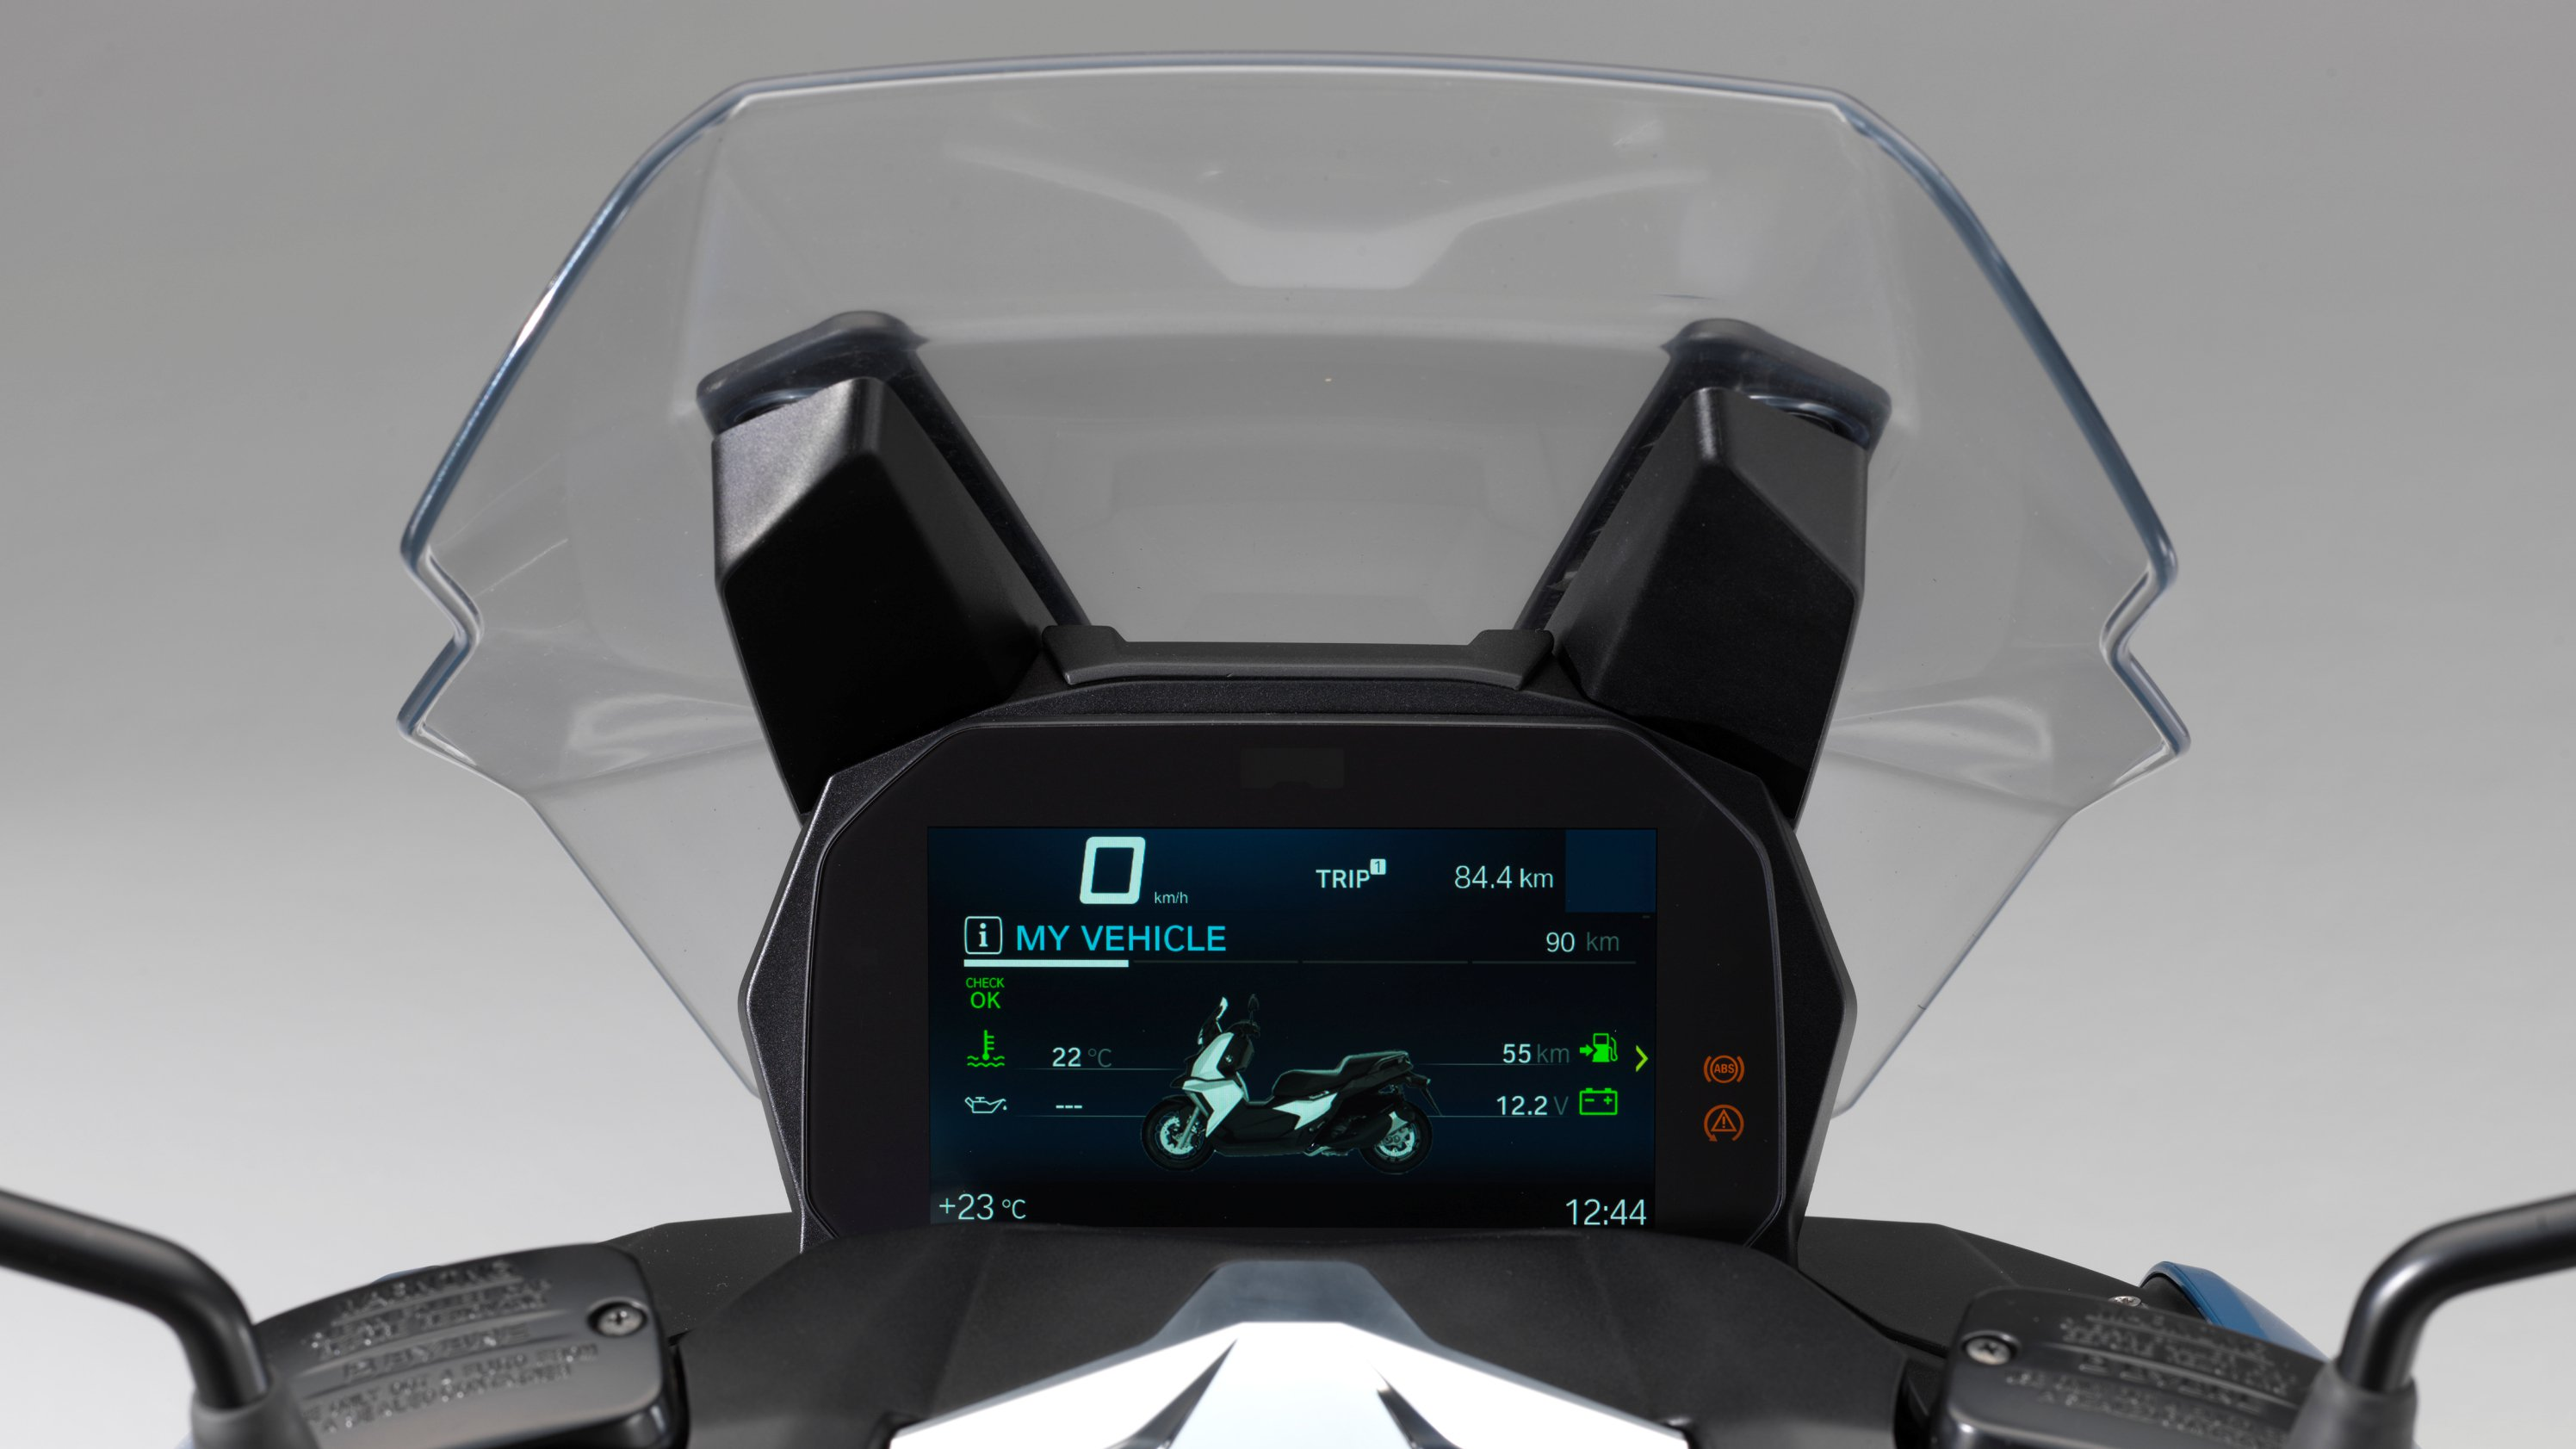 Penampakan Panel Display BMW C 400 X